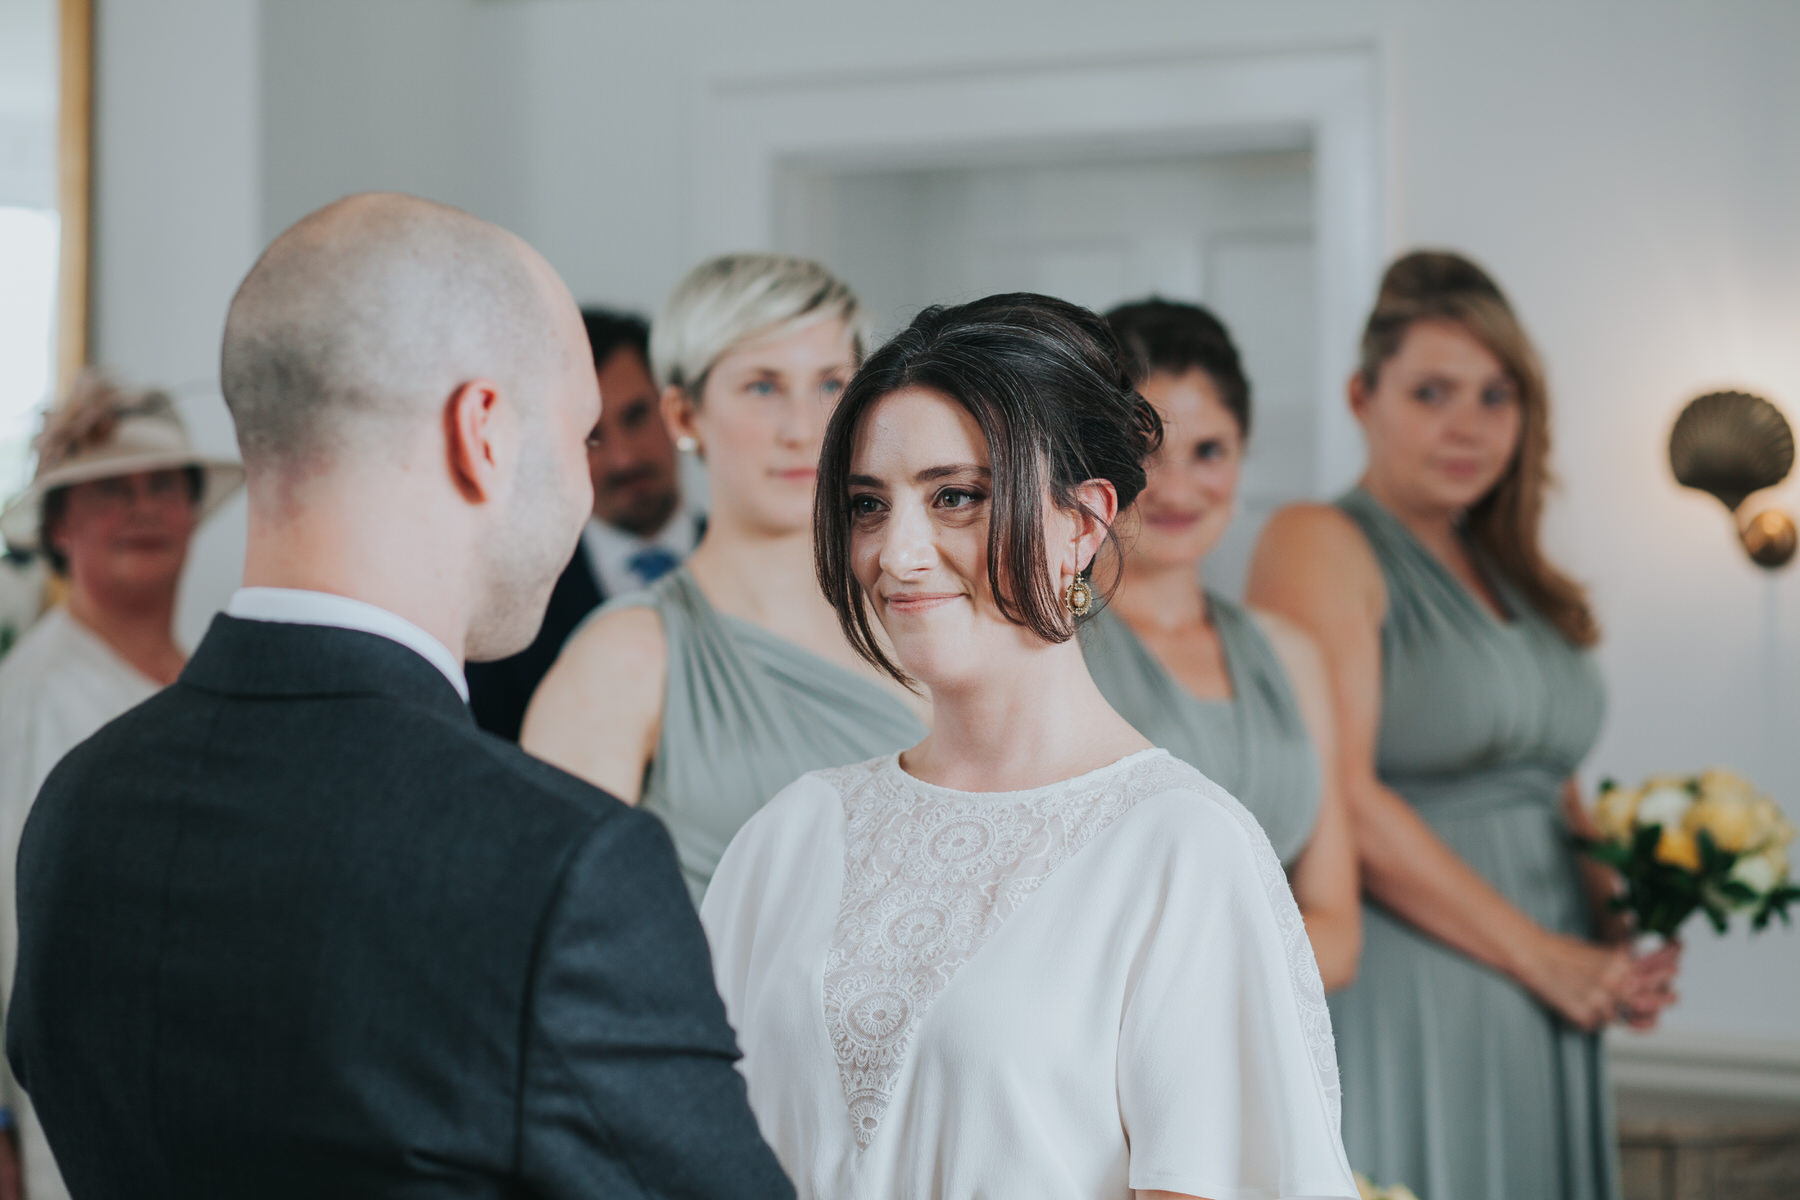 100 intimate moment during wedding ceremony.jpg